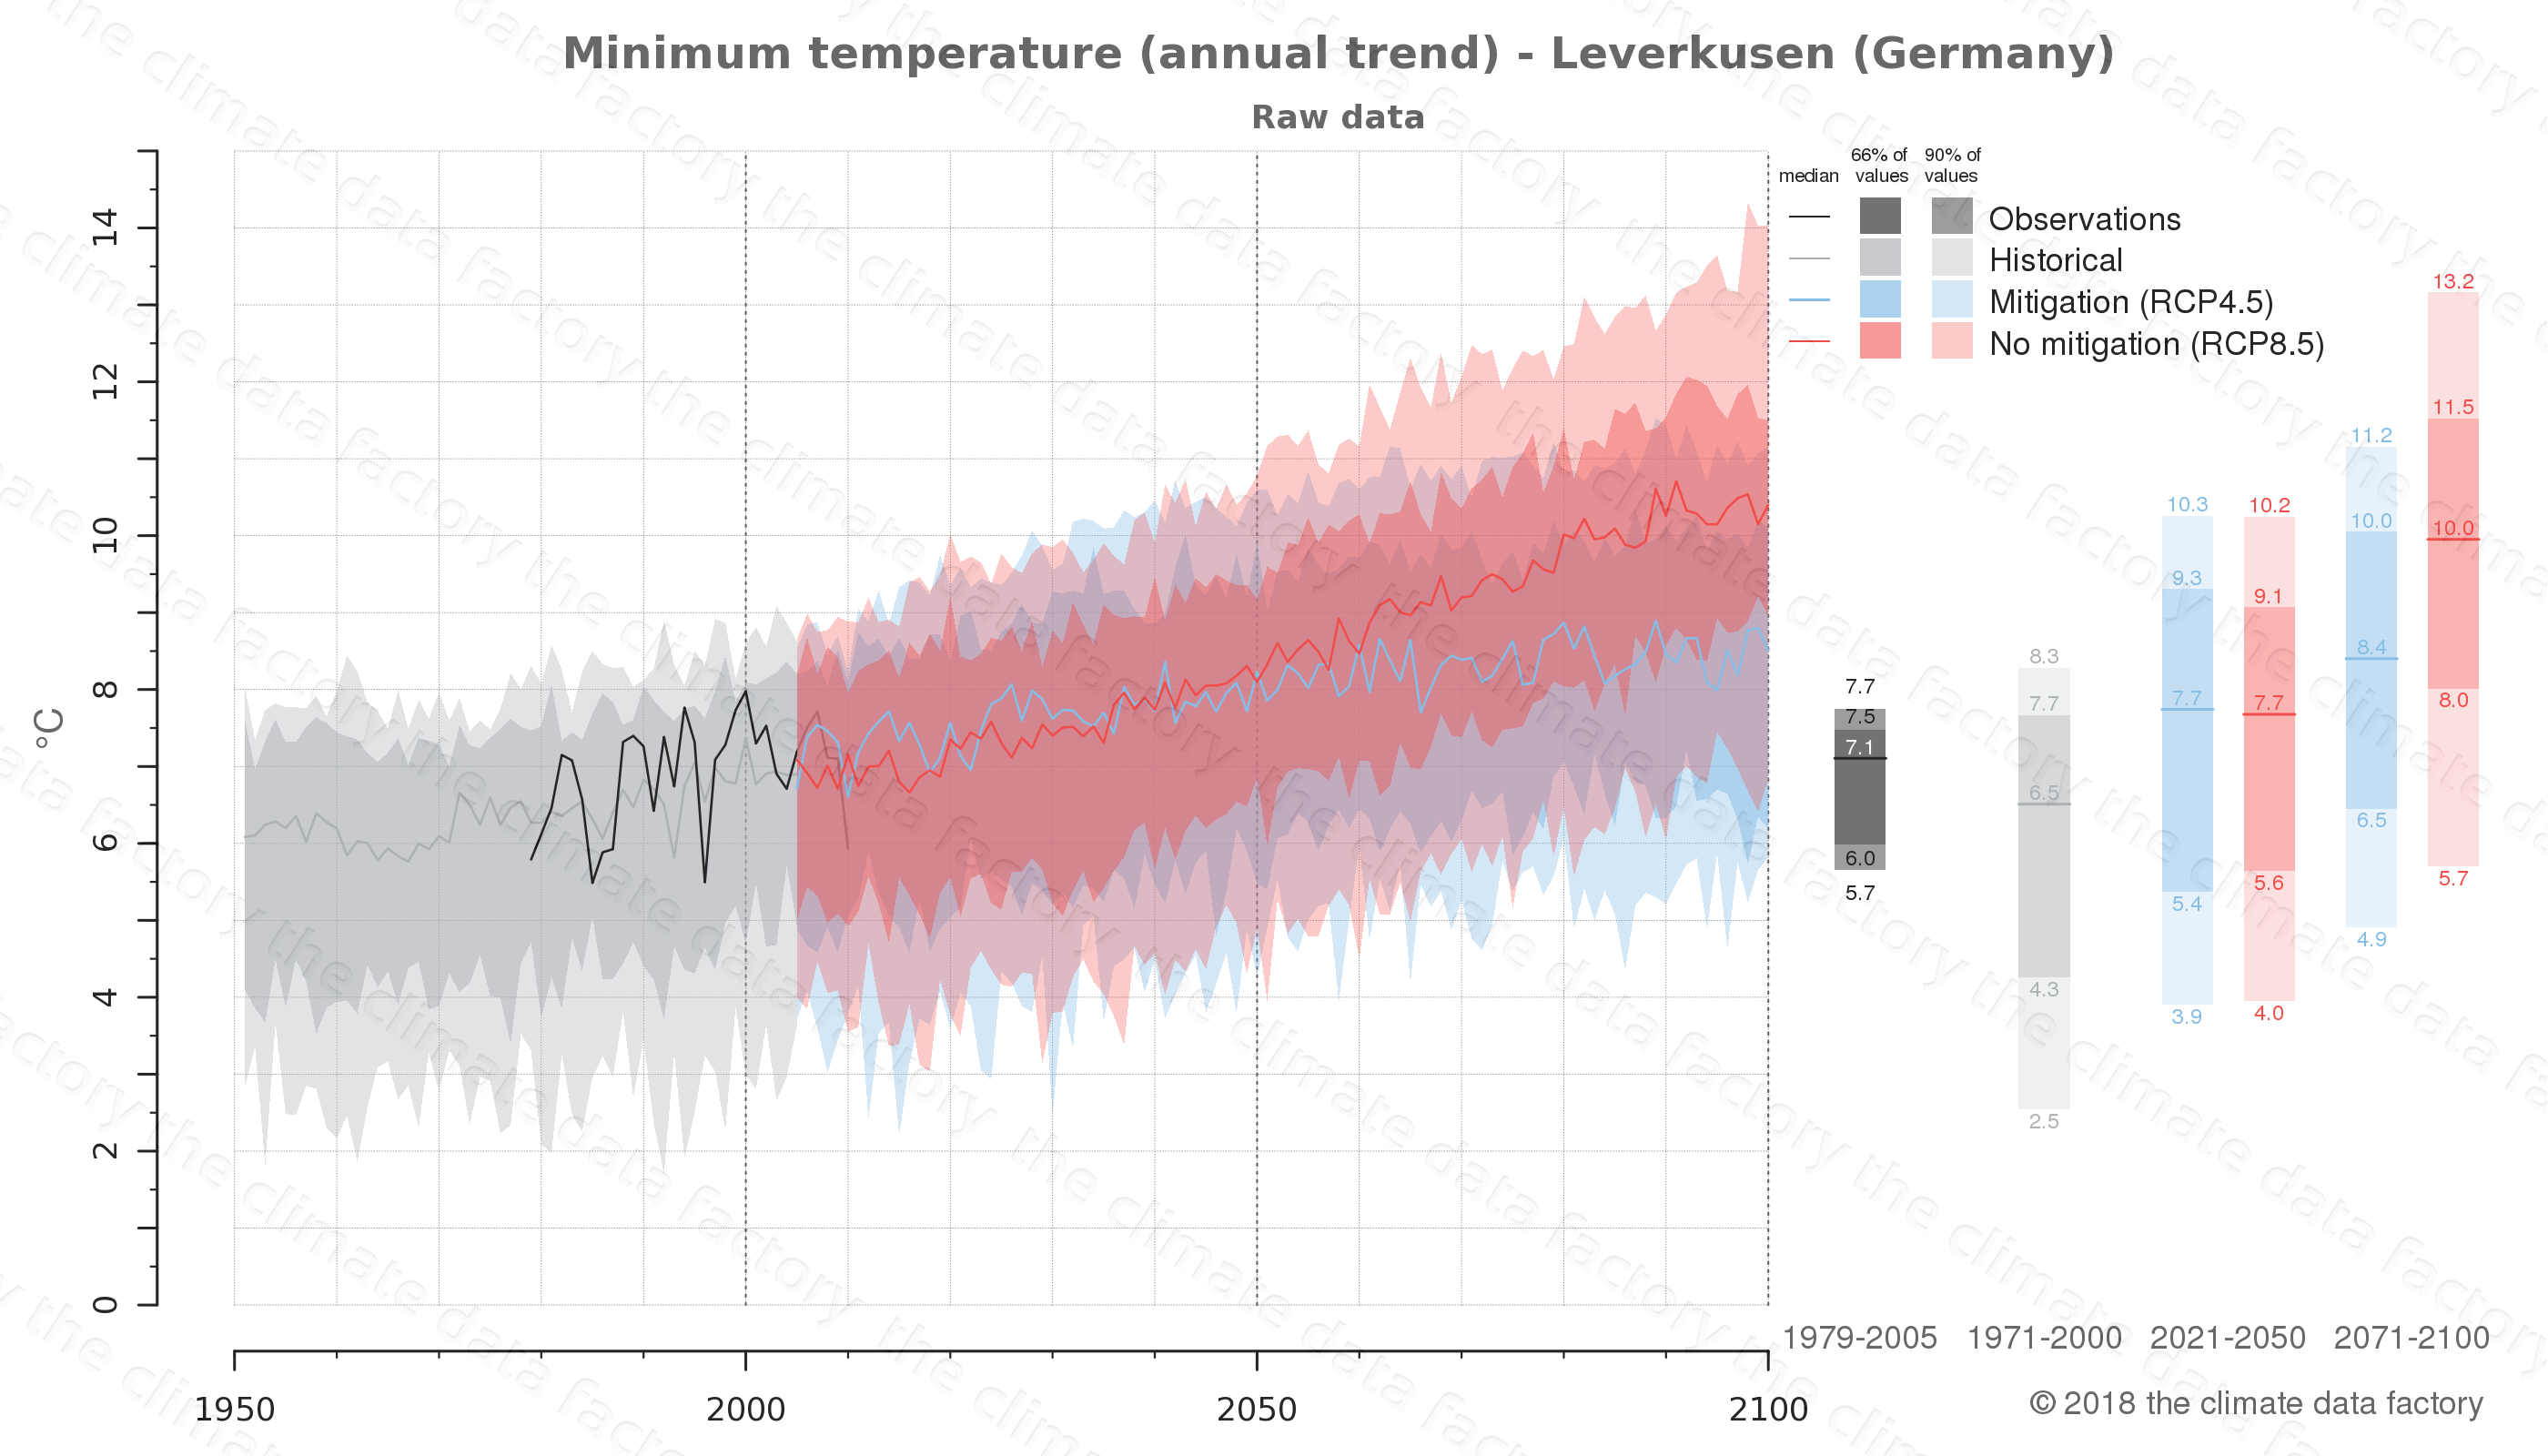 climate change data policy adaptation climate graph city data minimum-temperature leverkusen germany